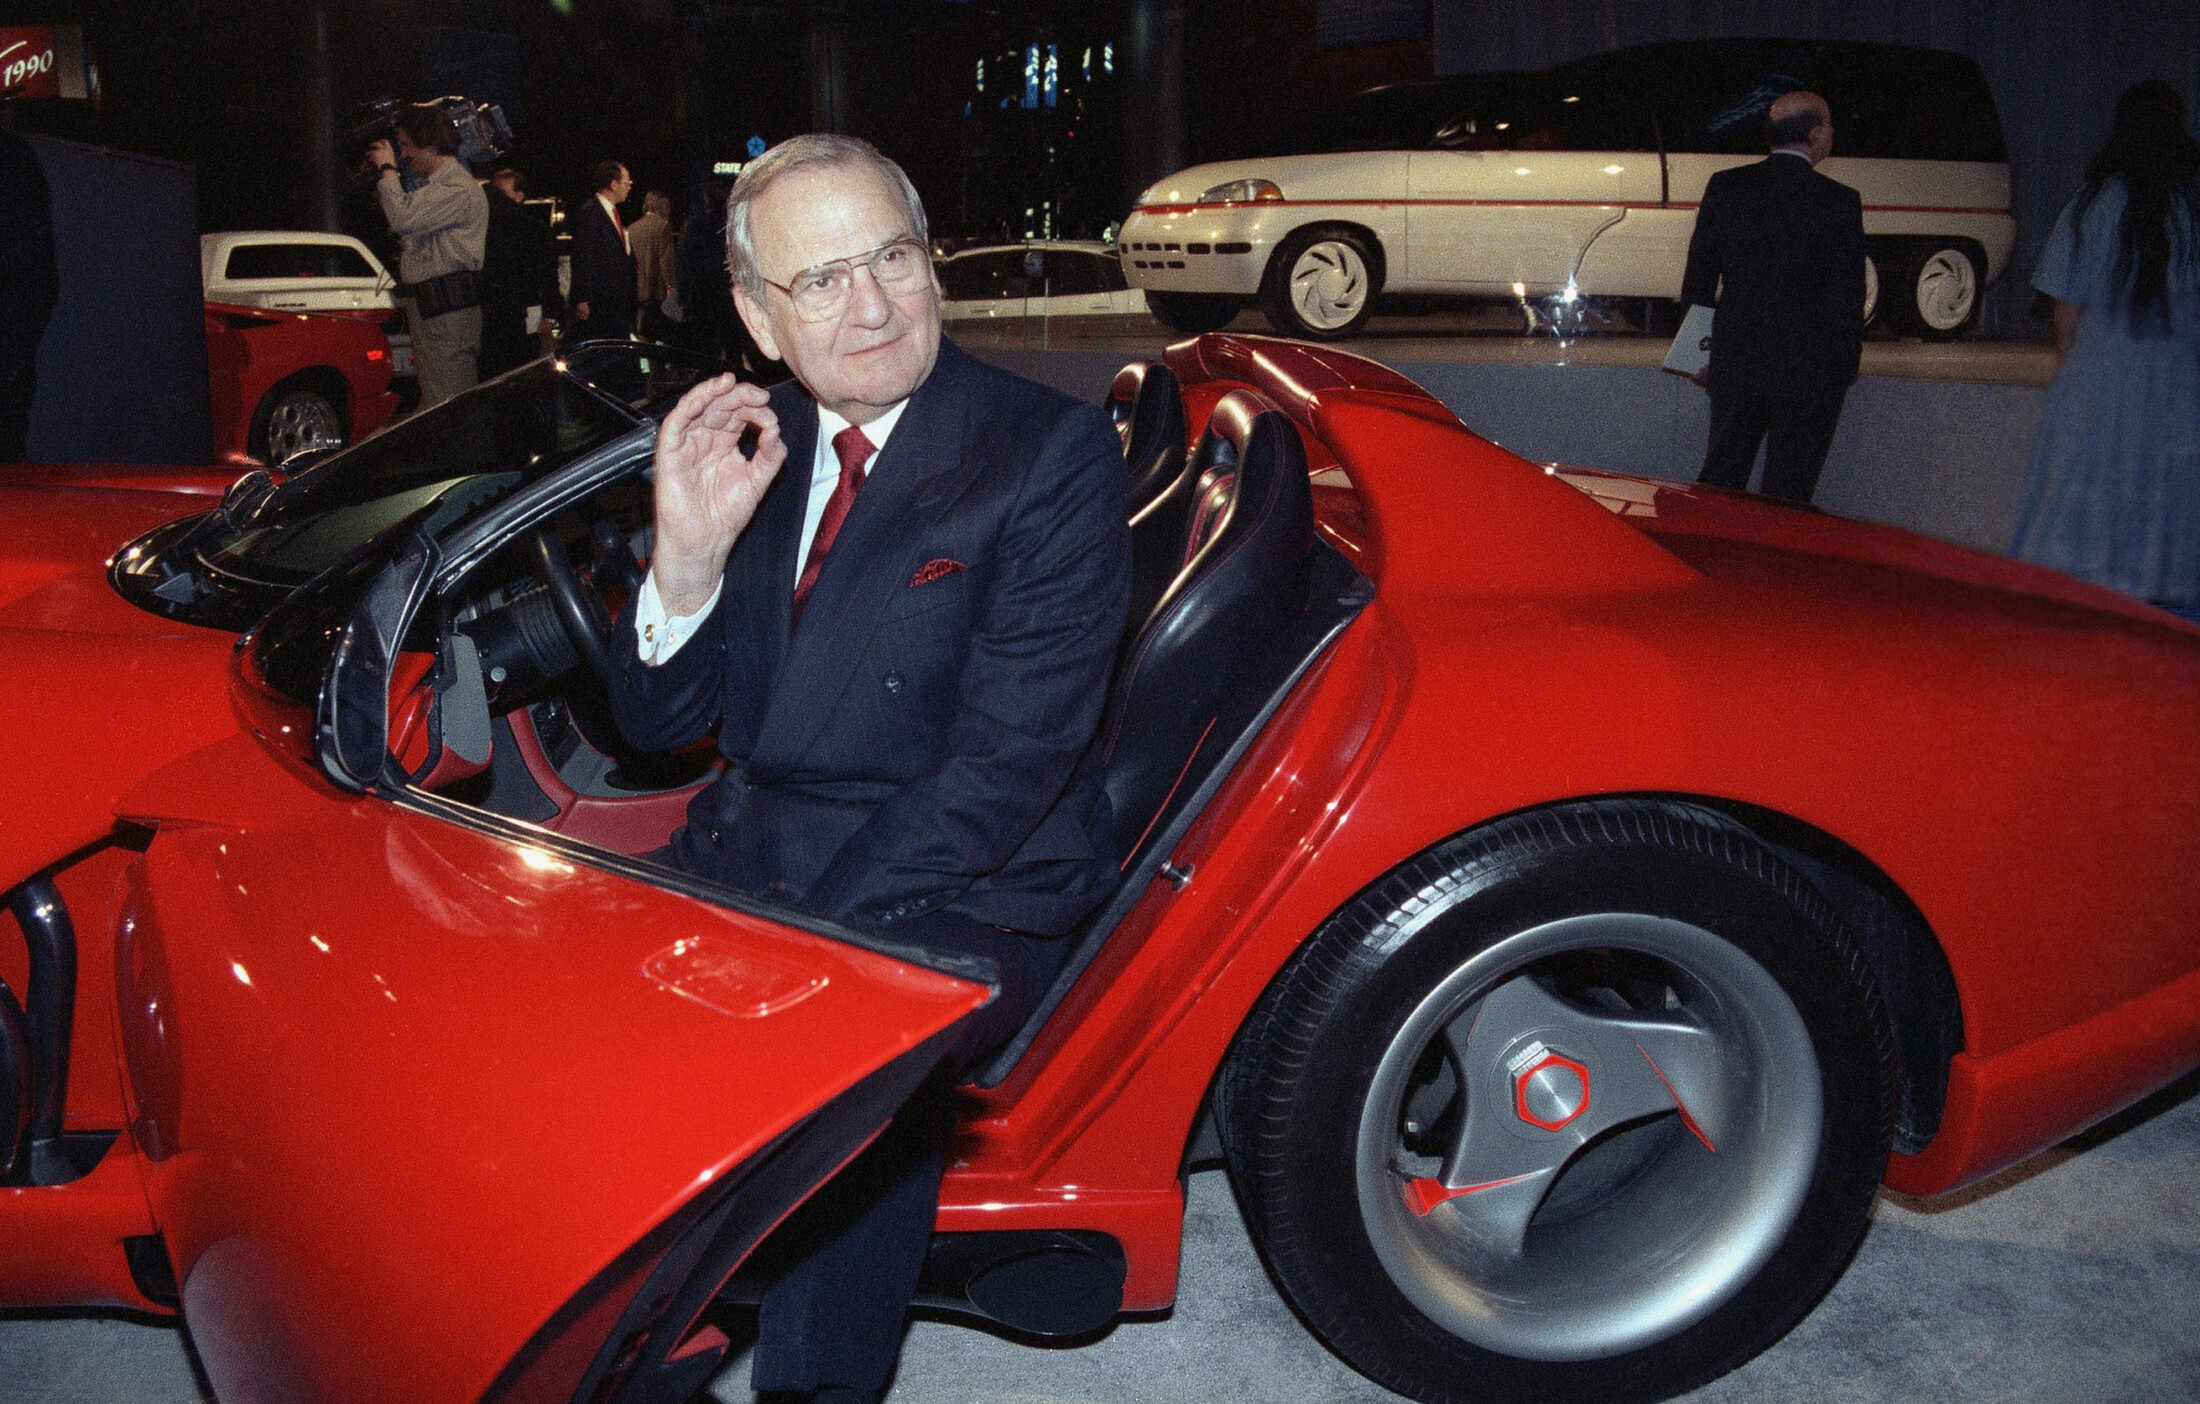 Lee Iacocca, high-profile auto executive credited with saving